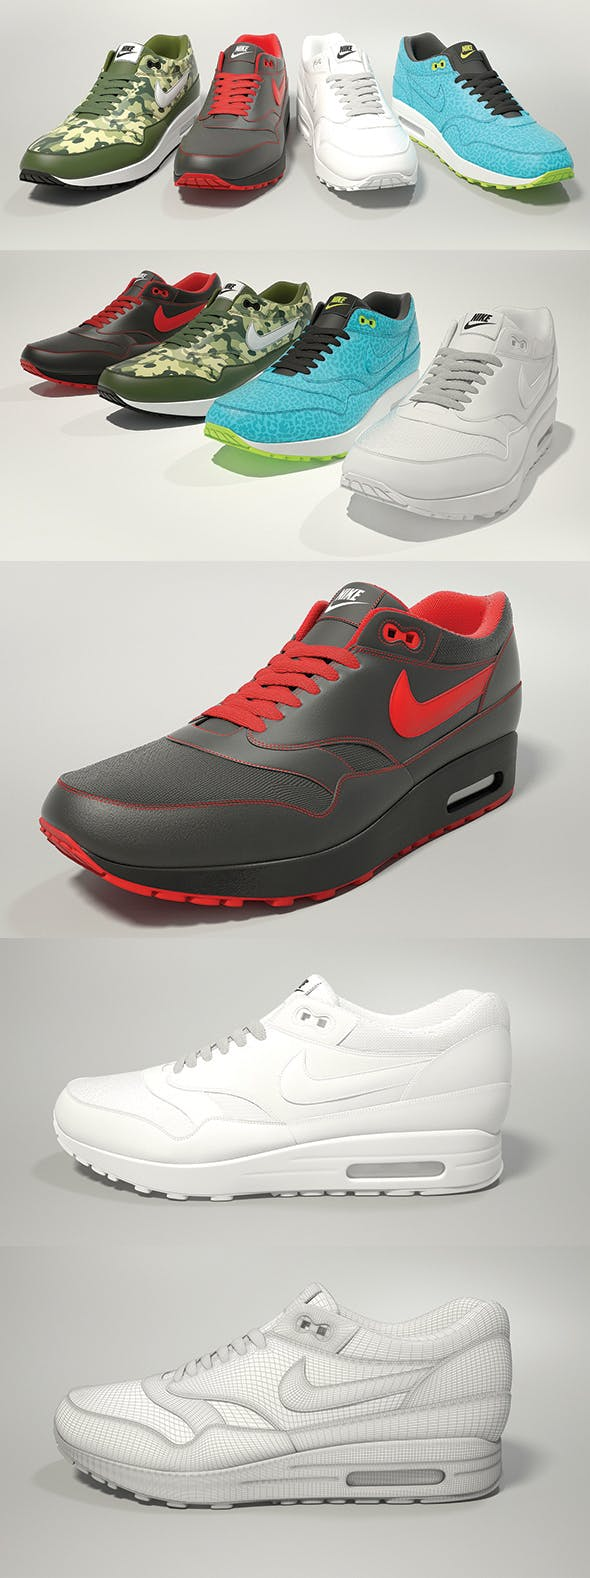 finest selection a20d9 008b7 Nike Air Max 1 3D model - 3DOcean Item for Sale